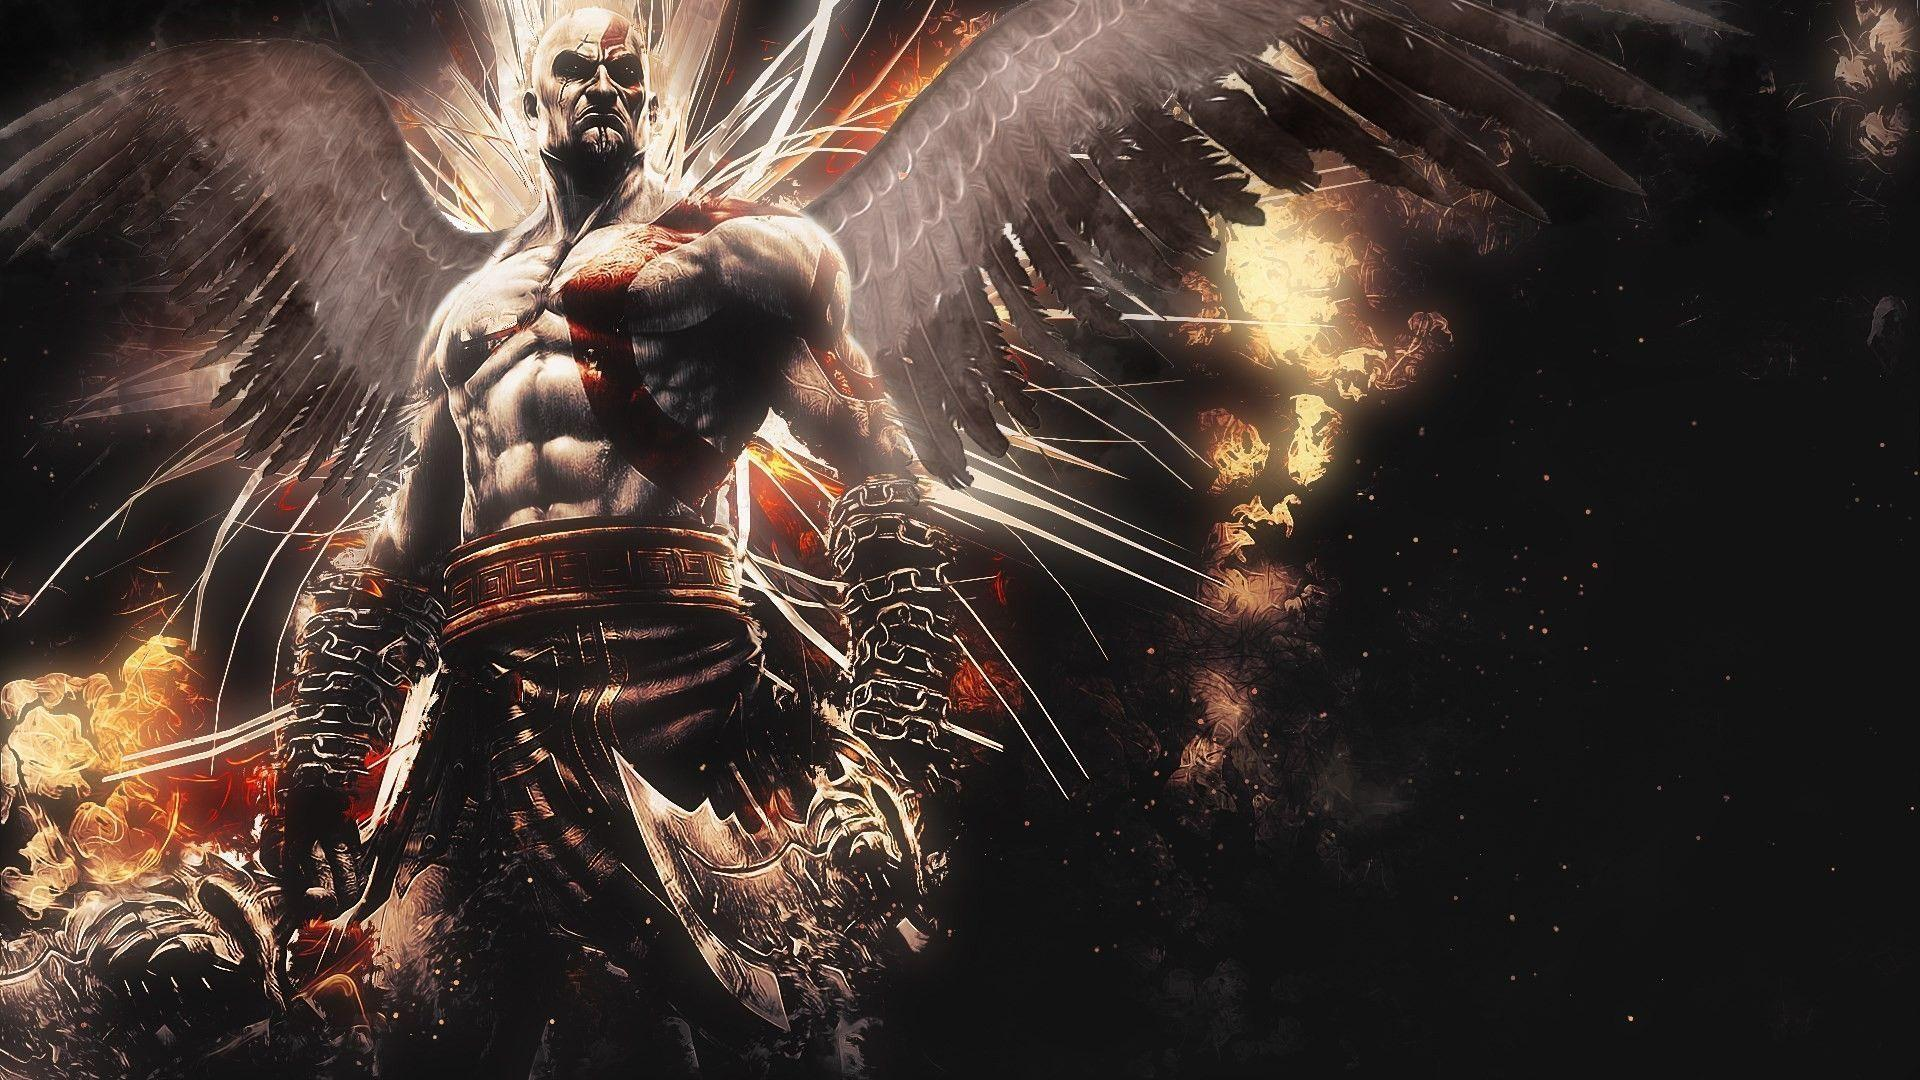 Image For > God Of War Ascension Wallpapers Kratos